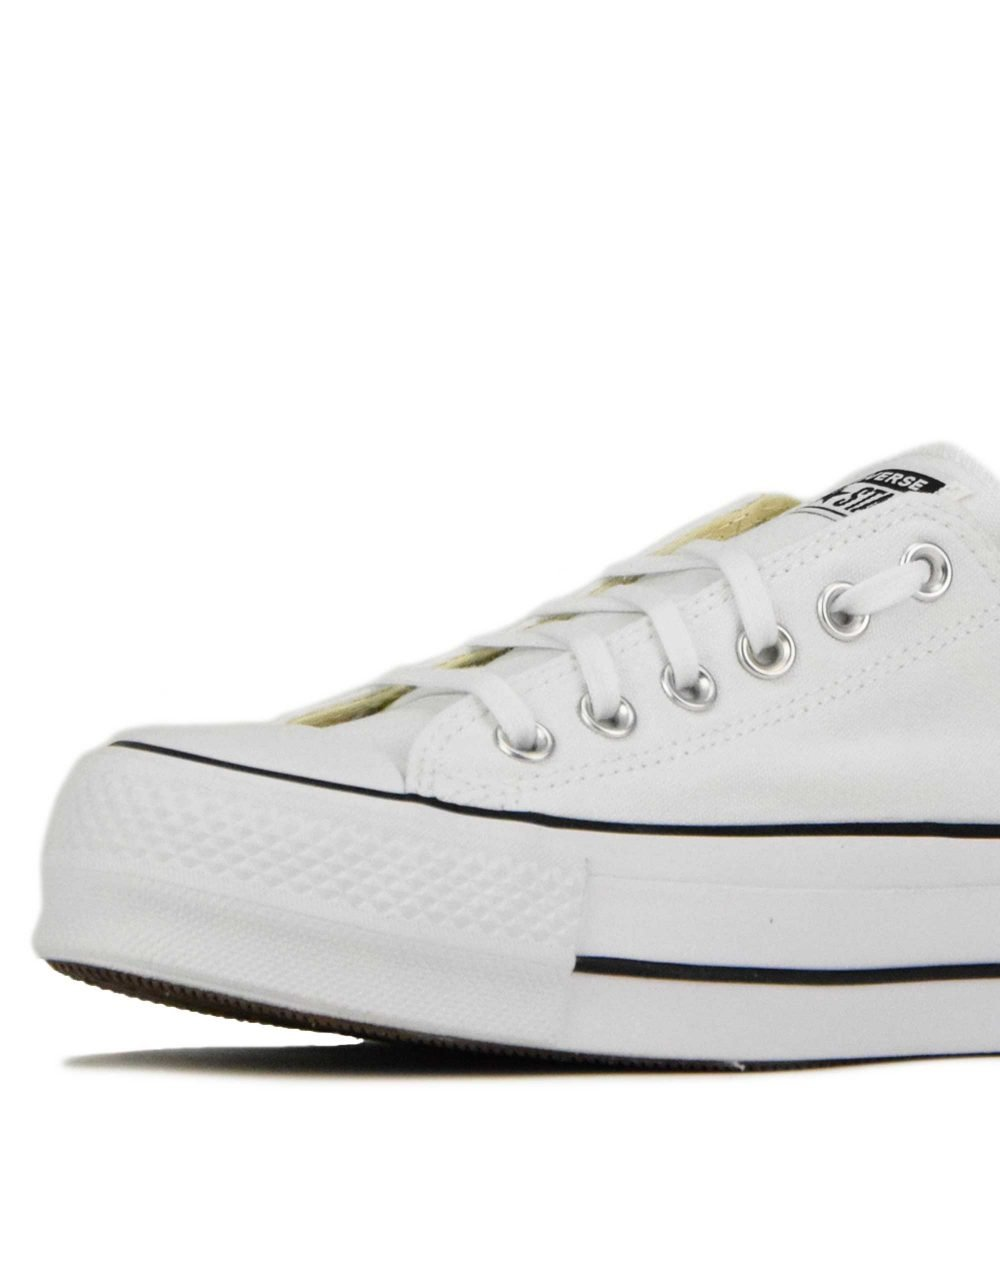 Converse Chuck Taylor All Star Lift Platform (560251) White/Black